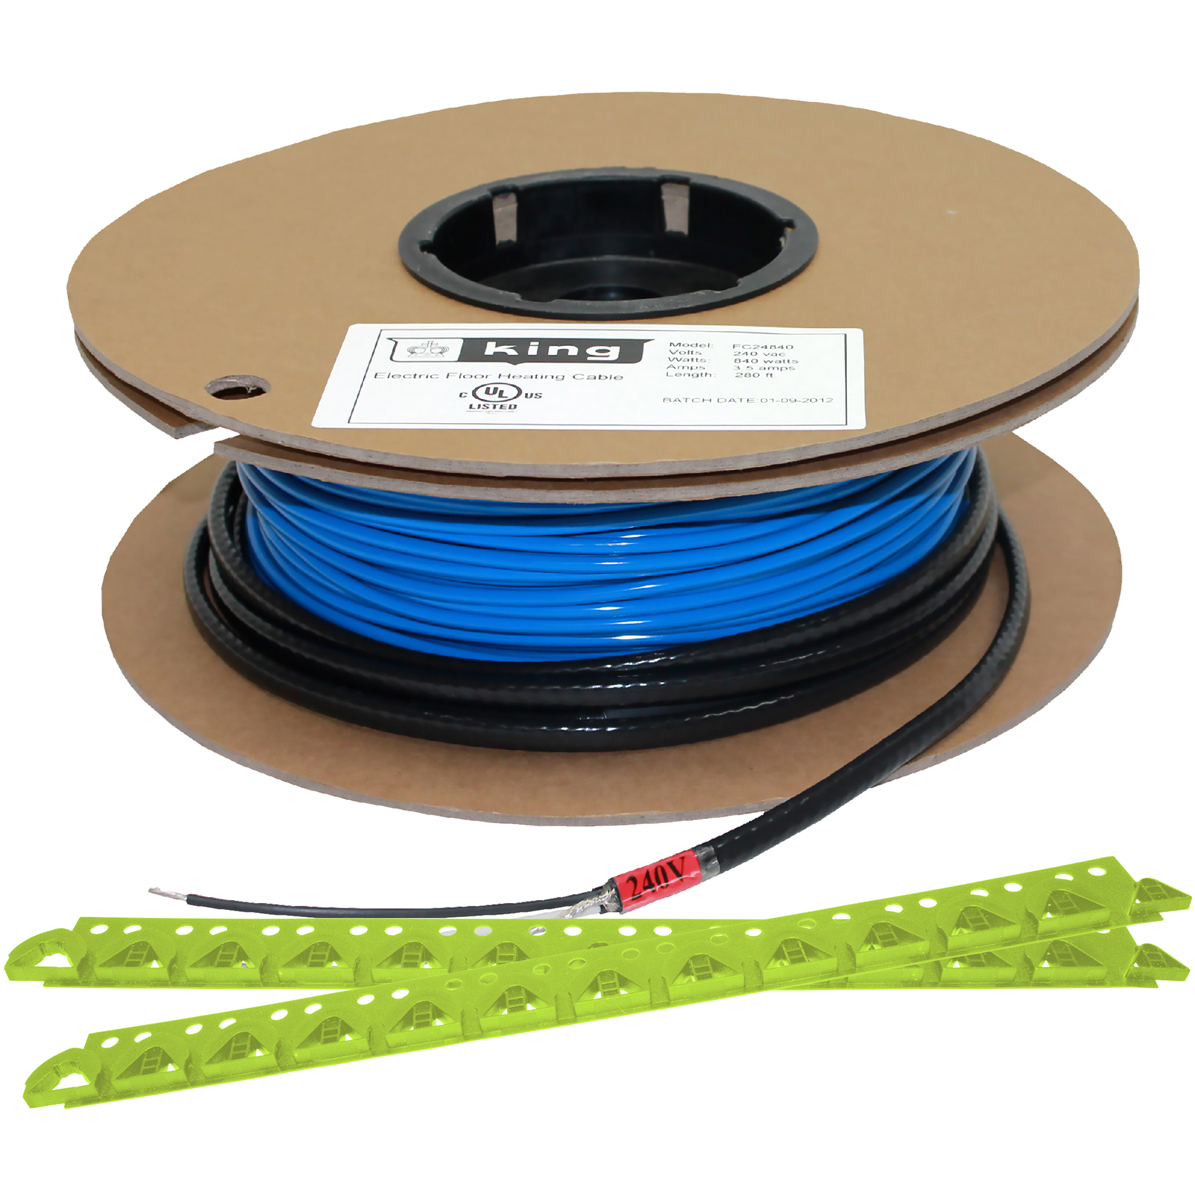 King Electric Model Fc 240 Volt Cable